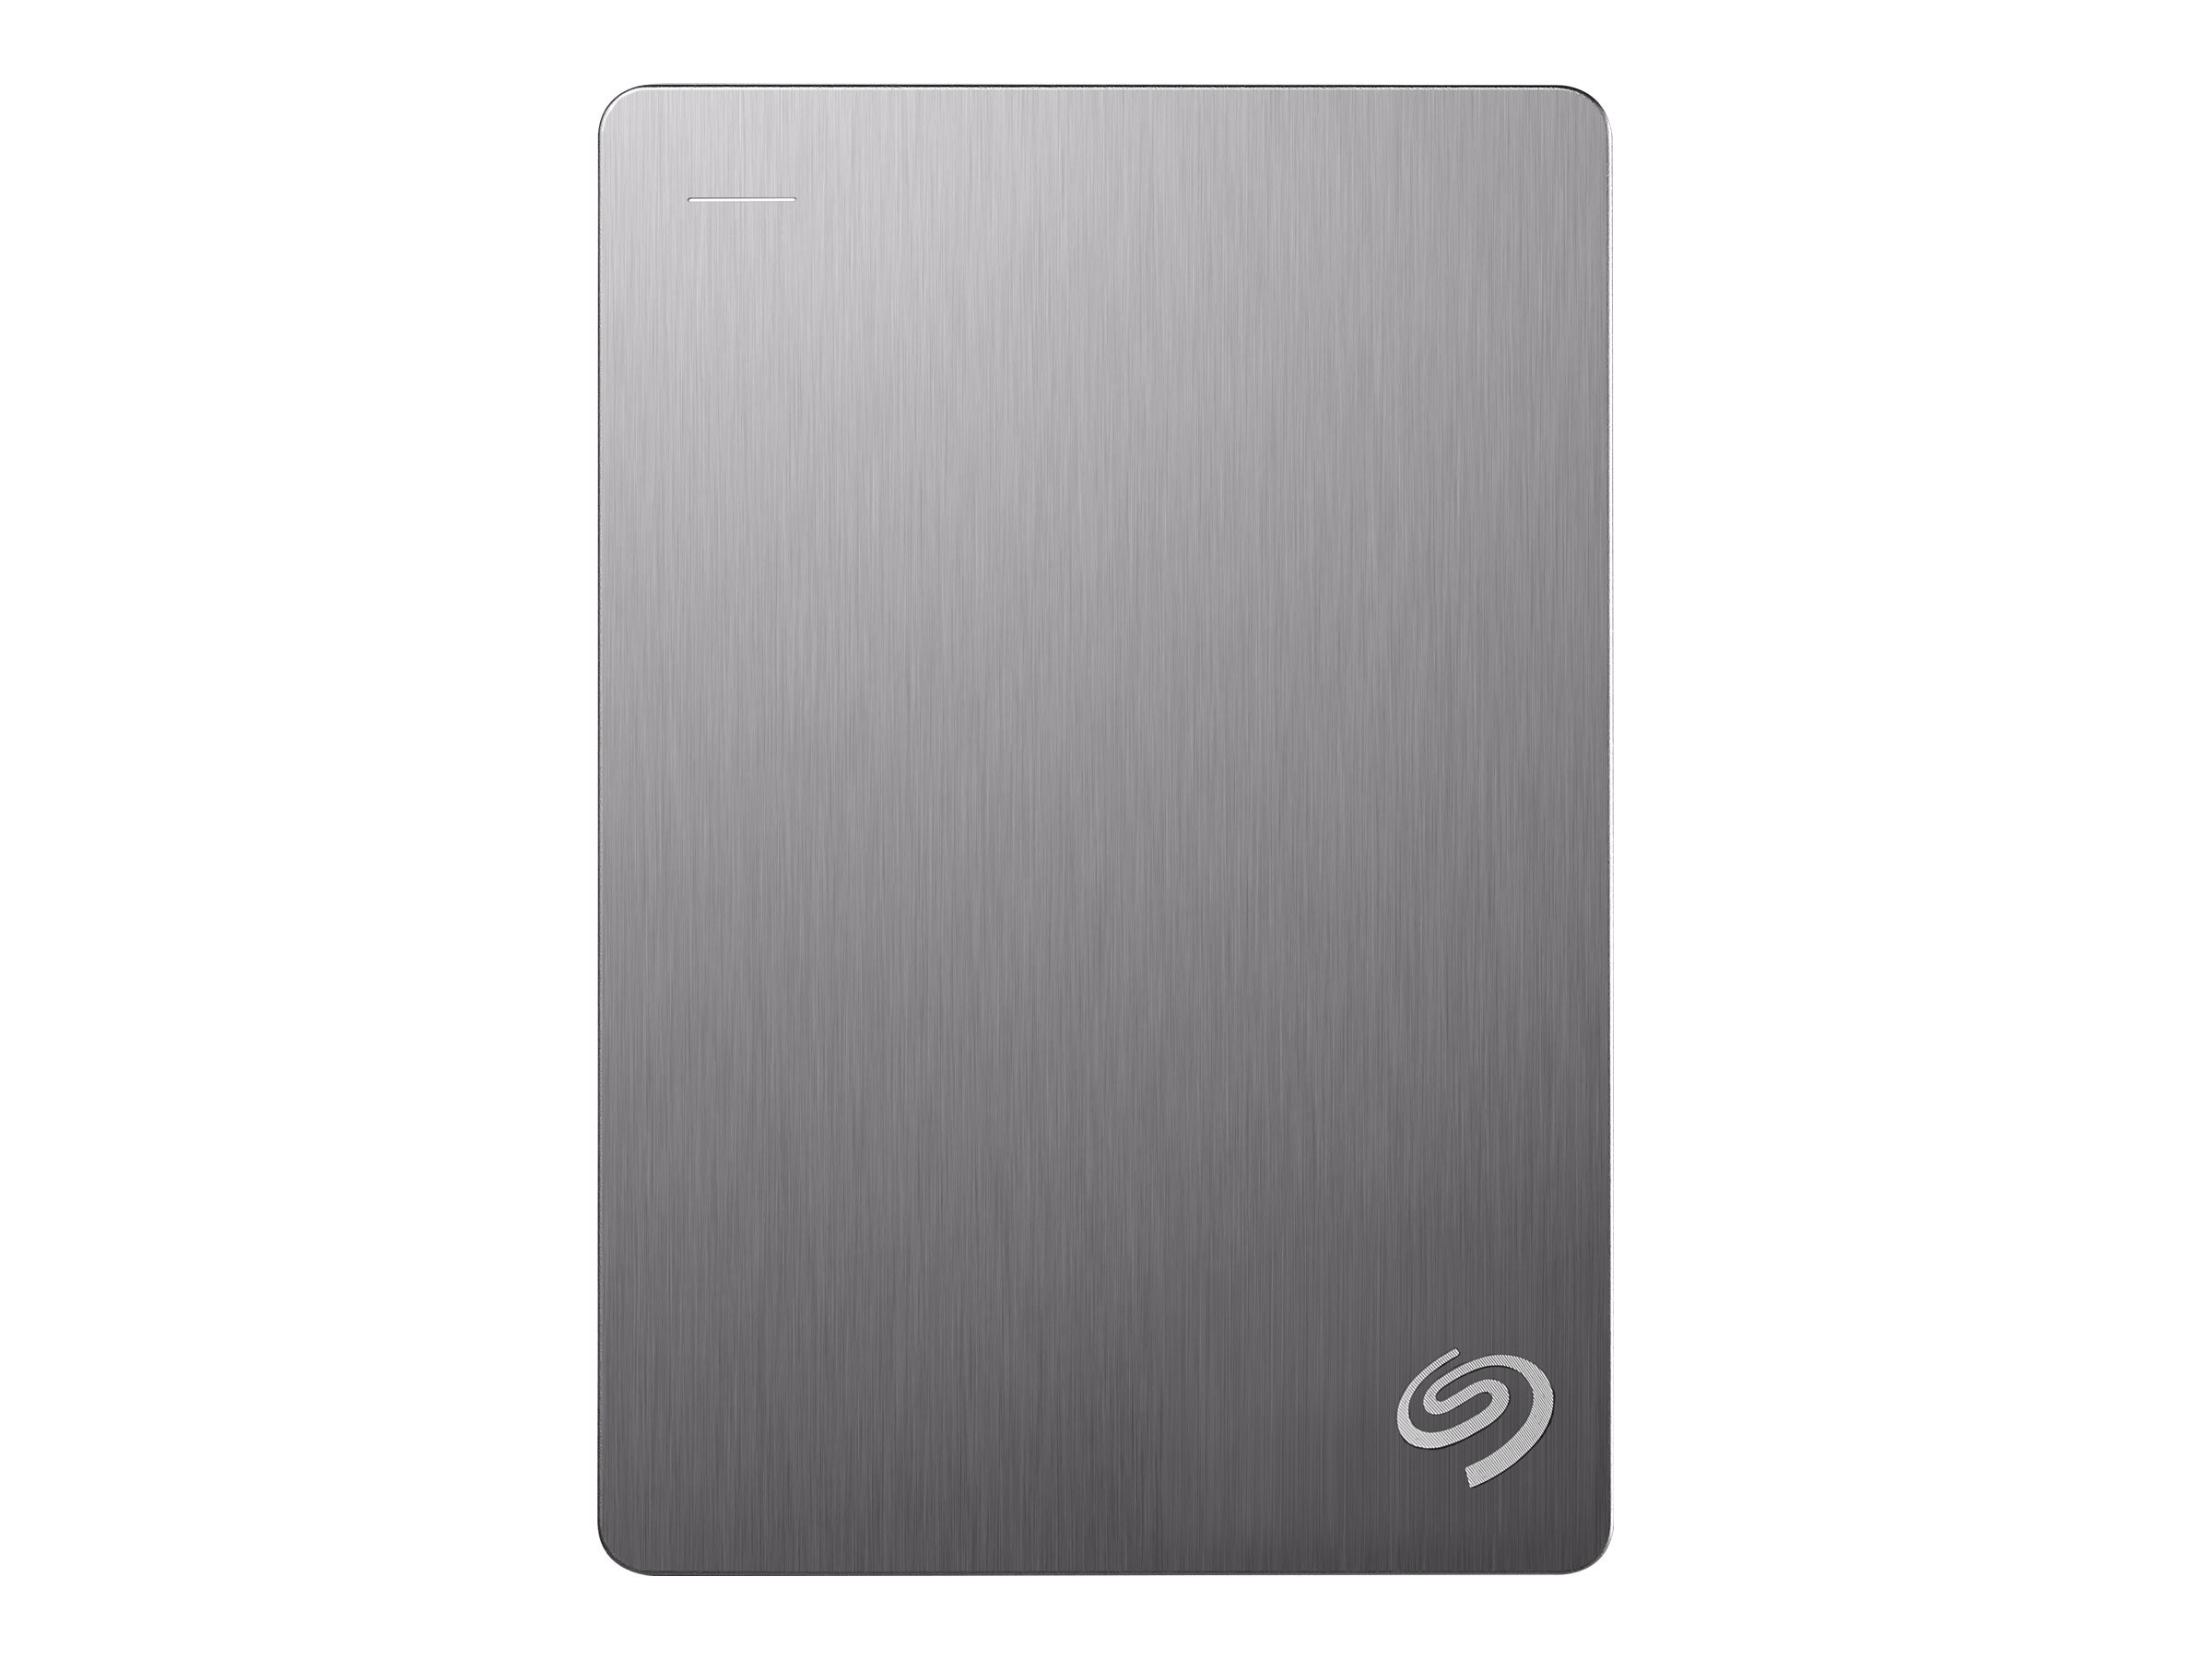 Seagate Technology STDS4000400 Image 4